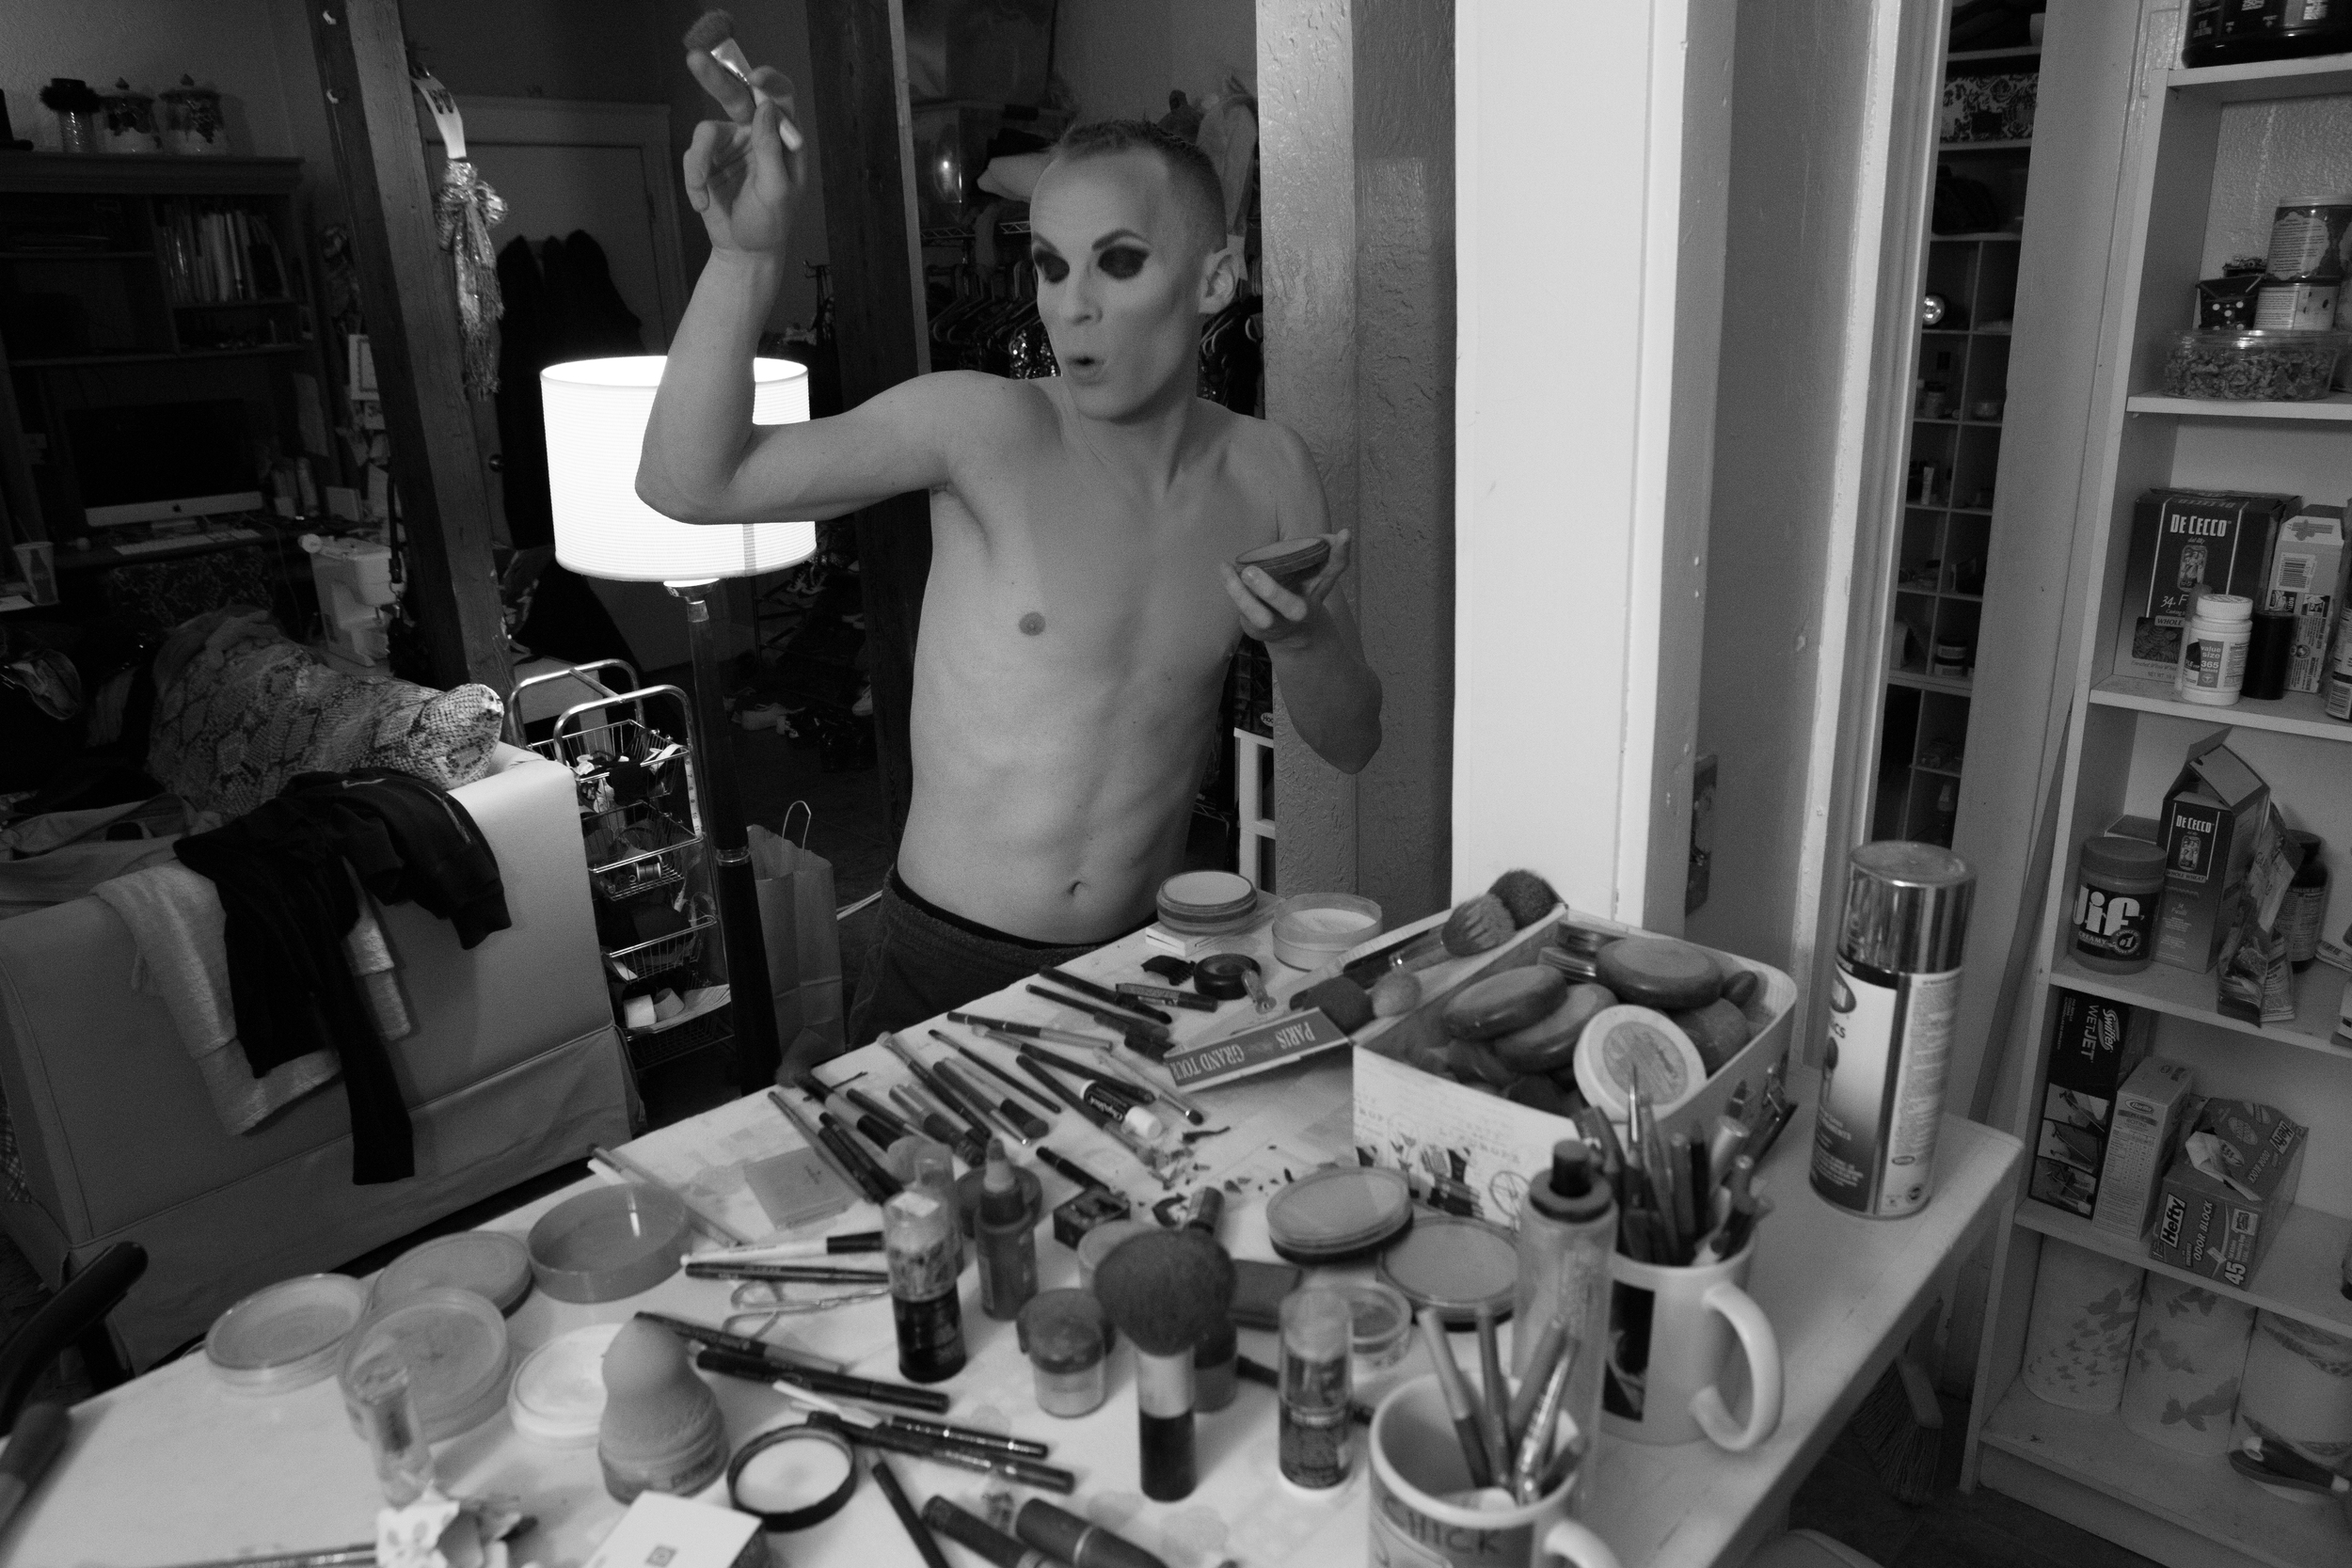 Brian McCook dances in his Broadway Street apartment in Boston, Mass. while applying makeup to dress in drag for a performance at Jaque's, a nearby bar that features entertainers in drag. Photo credit: Justin Saglio